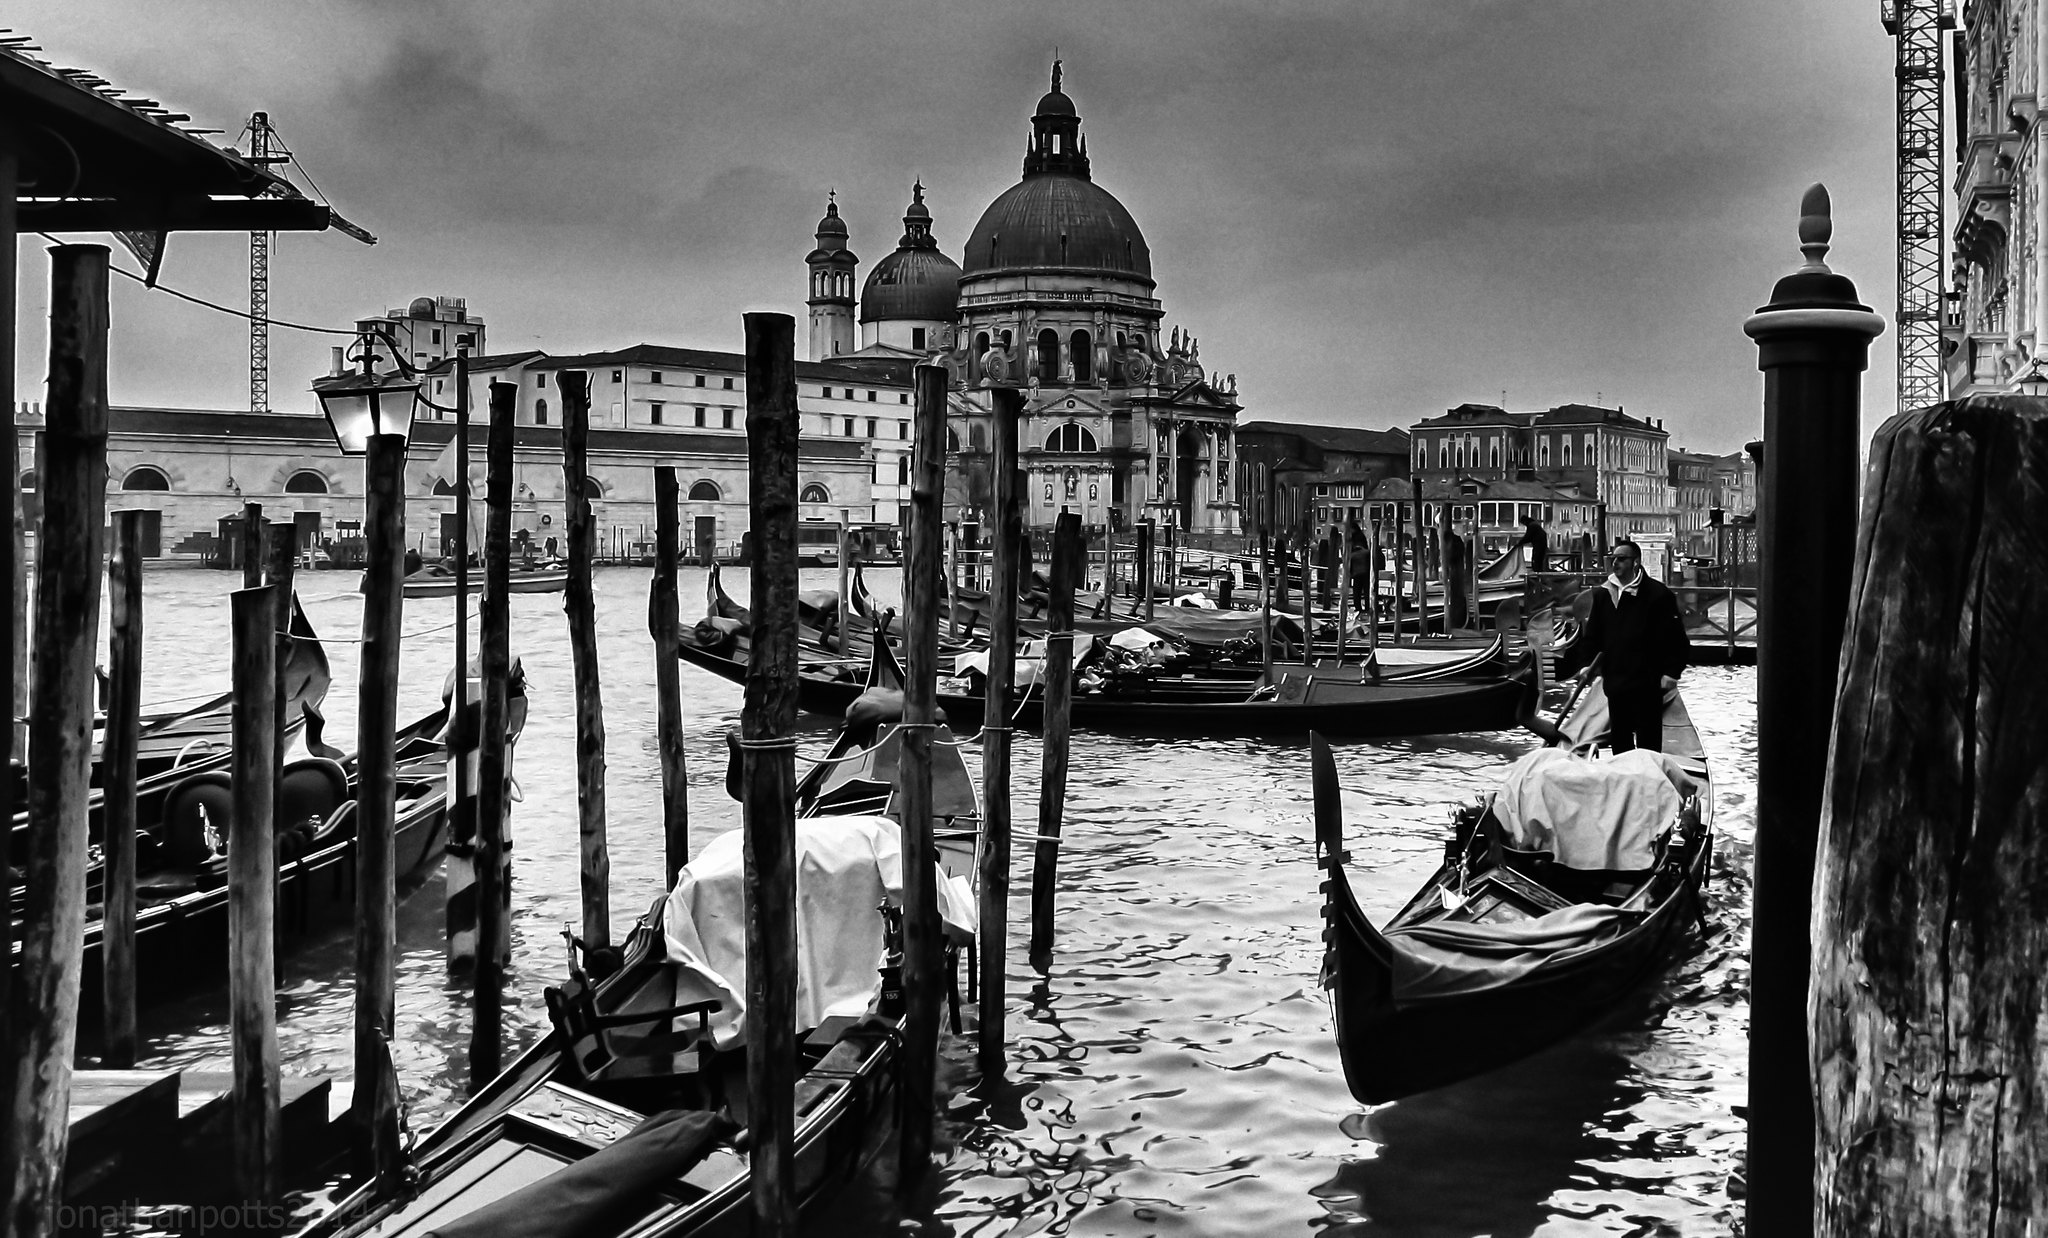 Invisible Cities, a love poem to the city - black and white photo of Venice